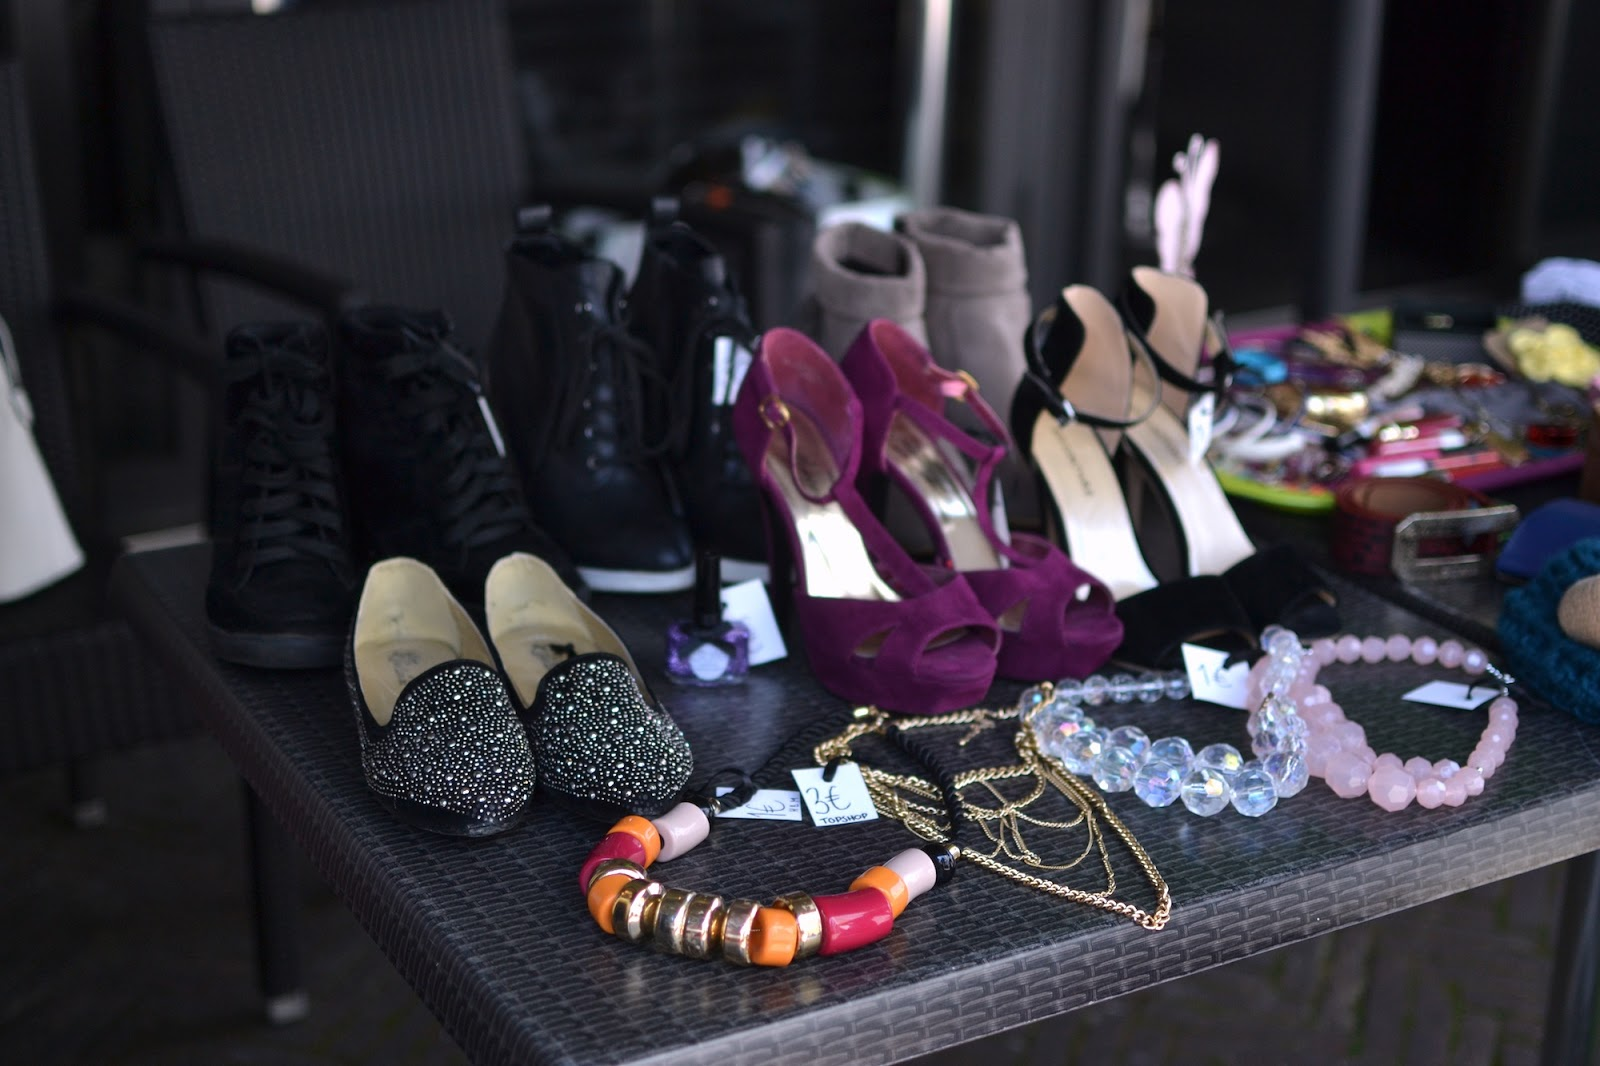 Luxembourg blogger closet sale